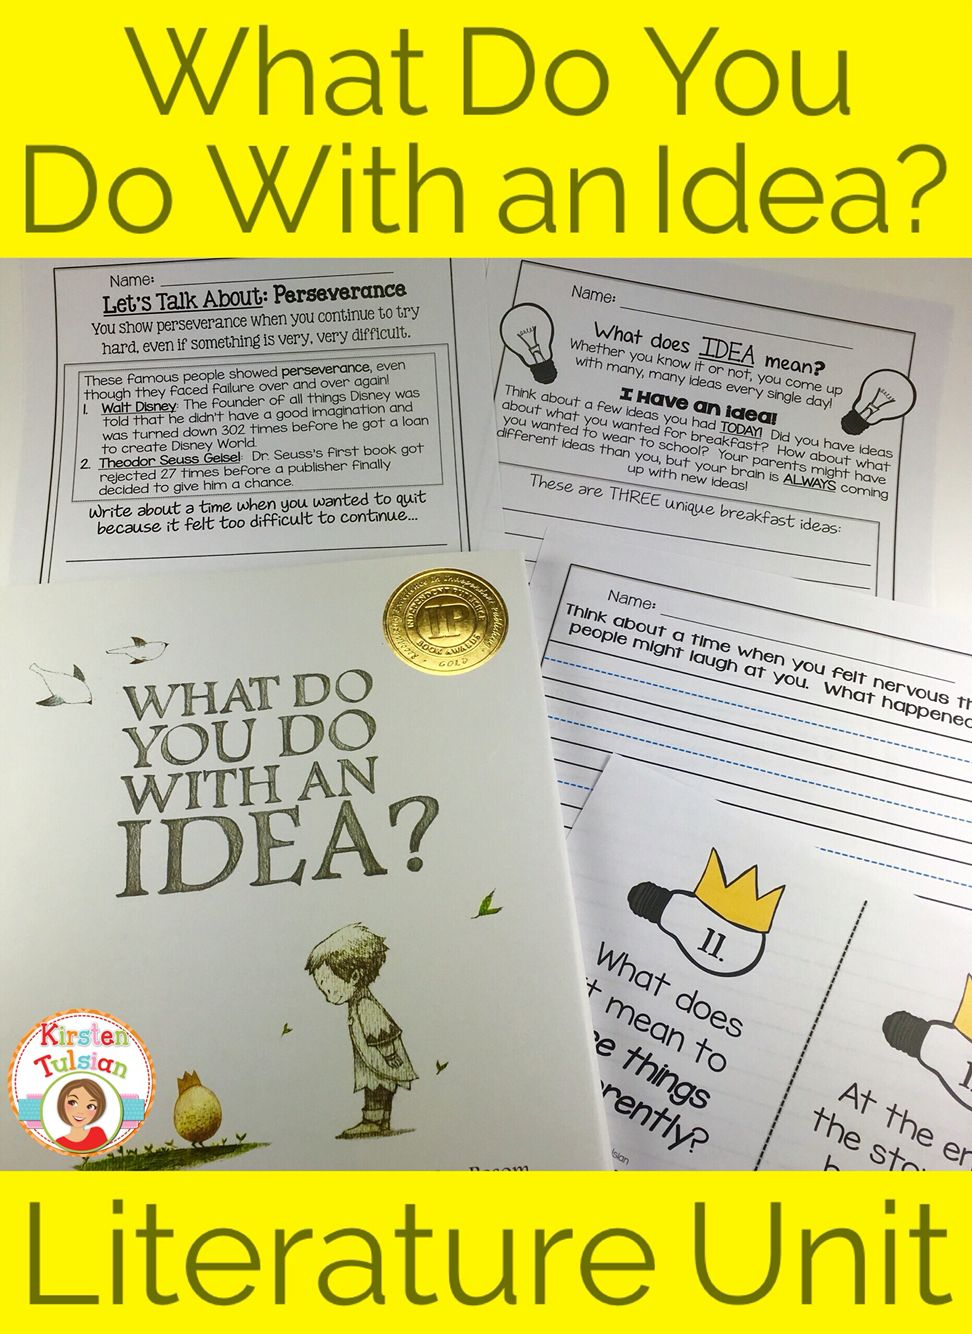 growth mindset picture books literature activities and boxes what do you do an idea by kobi yamada is a new independent publisher s